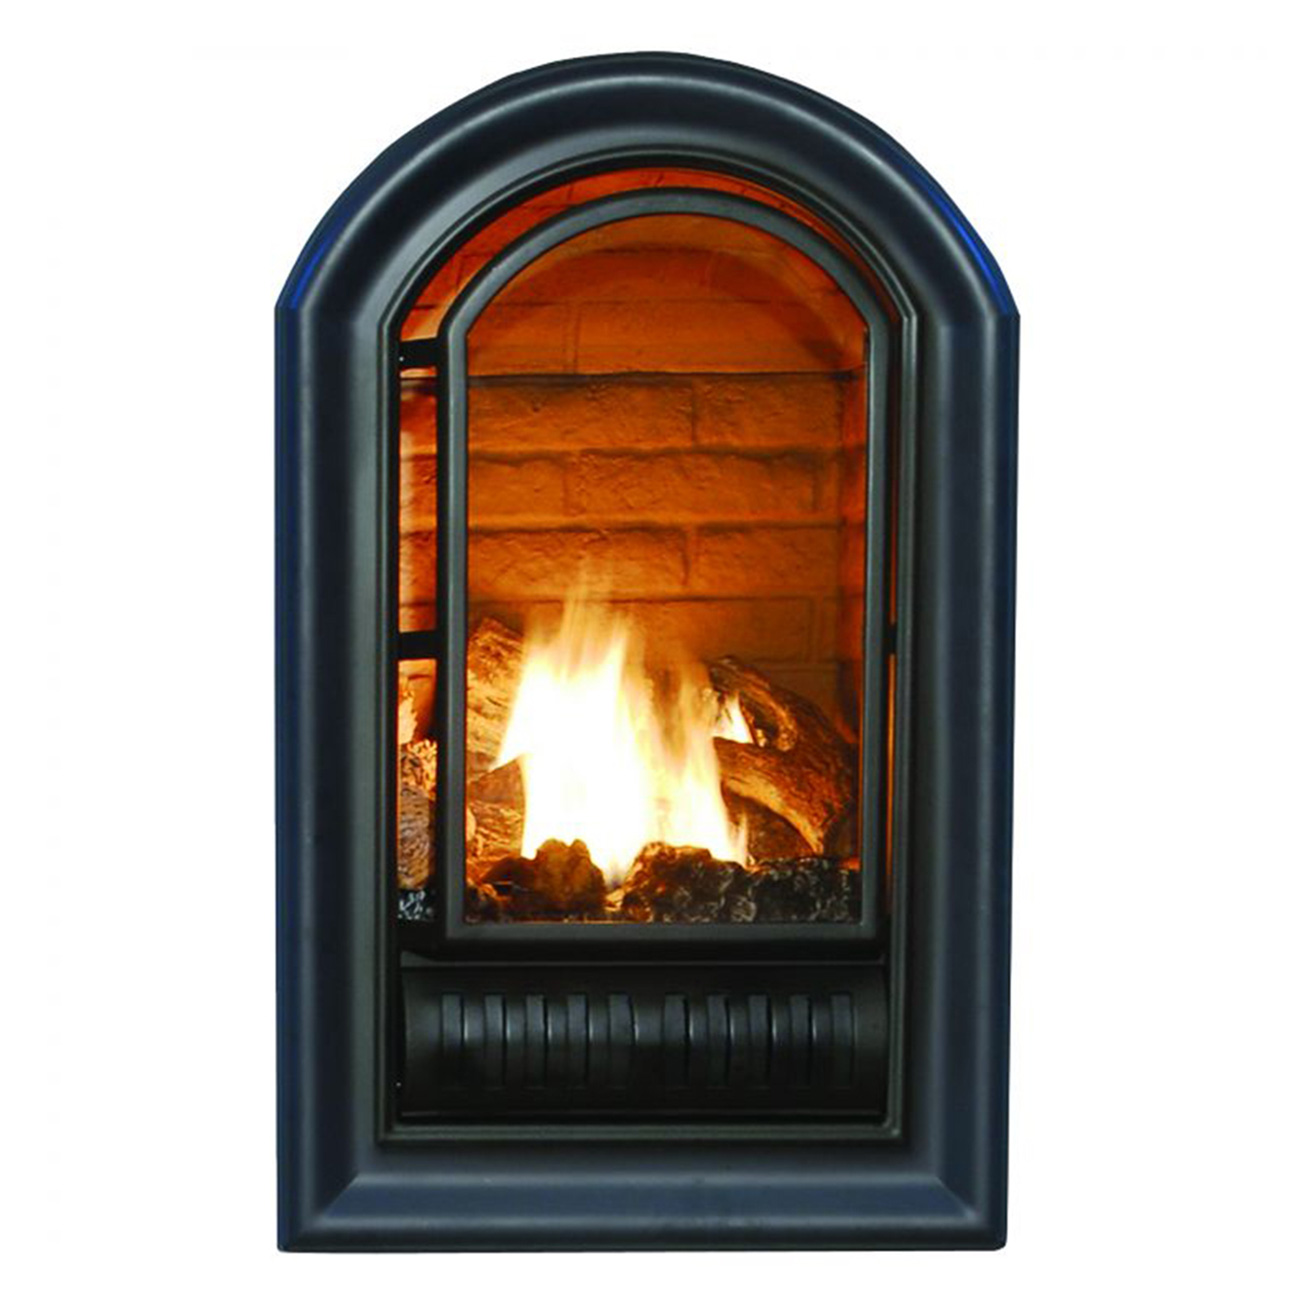 Ventless Gas Fireplaces How Safe Are They Really Earlyexperts